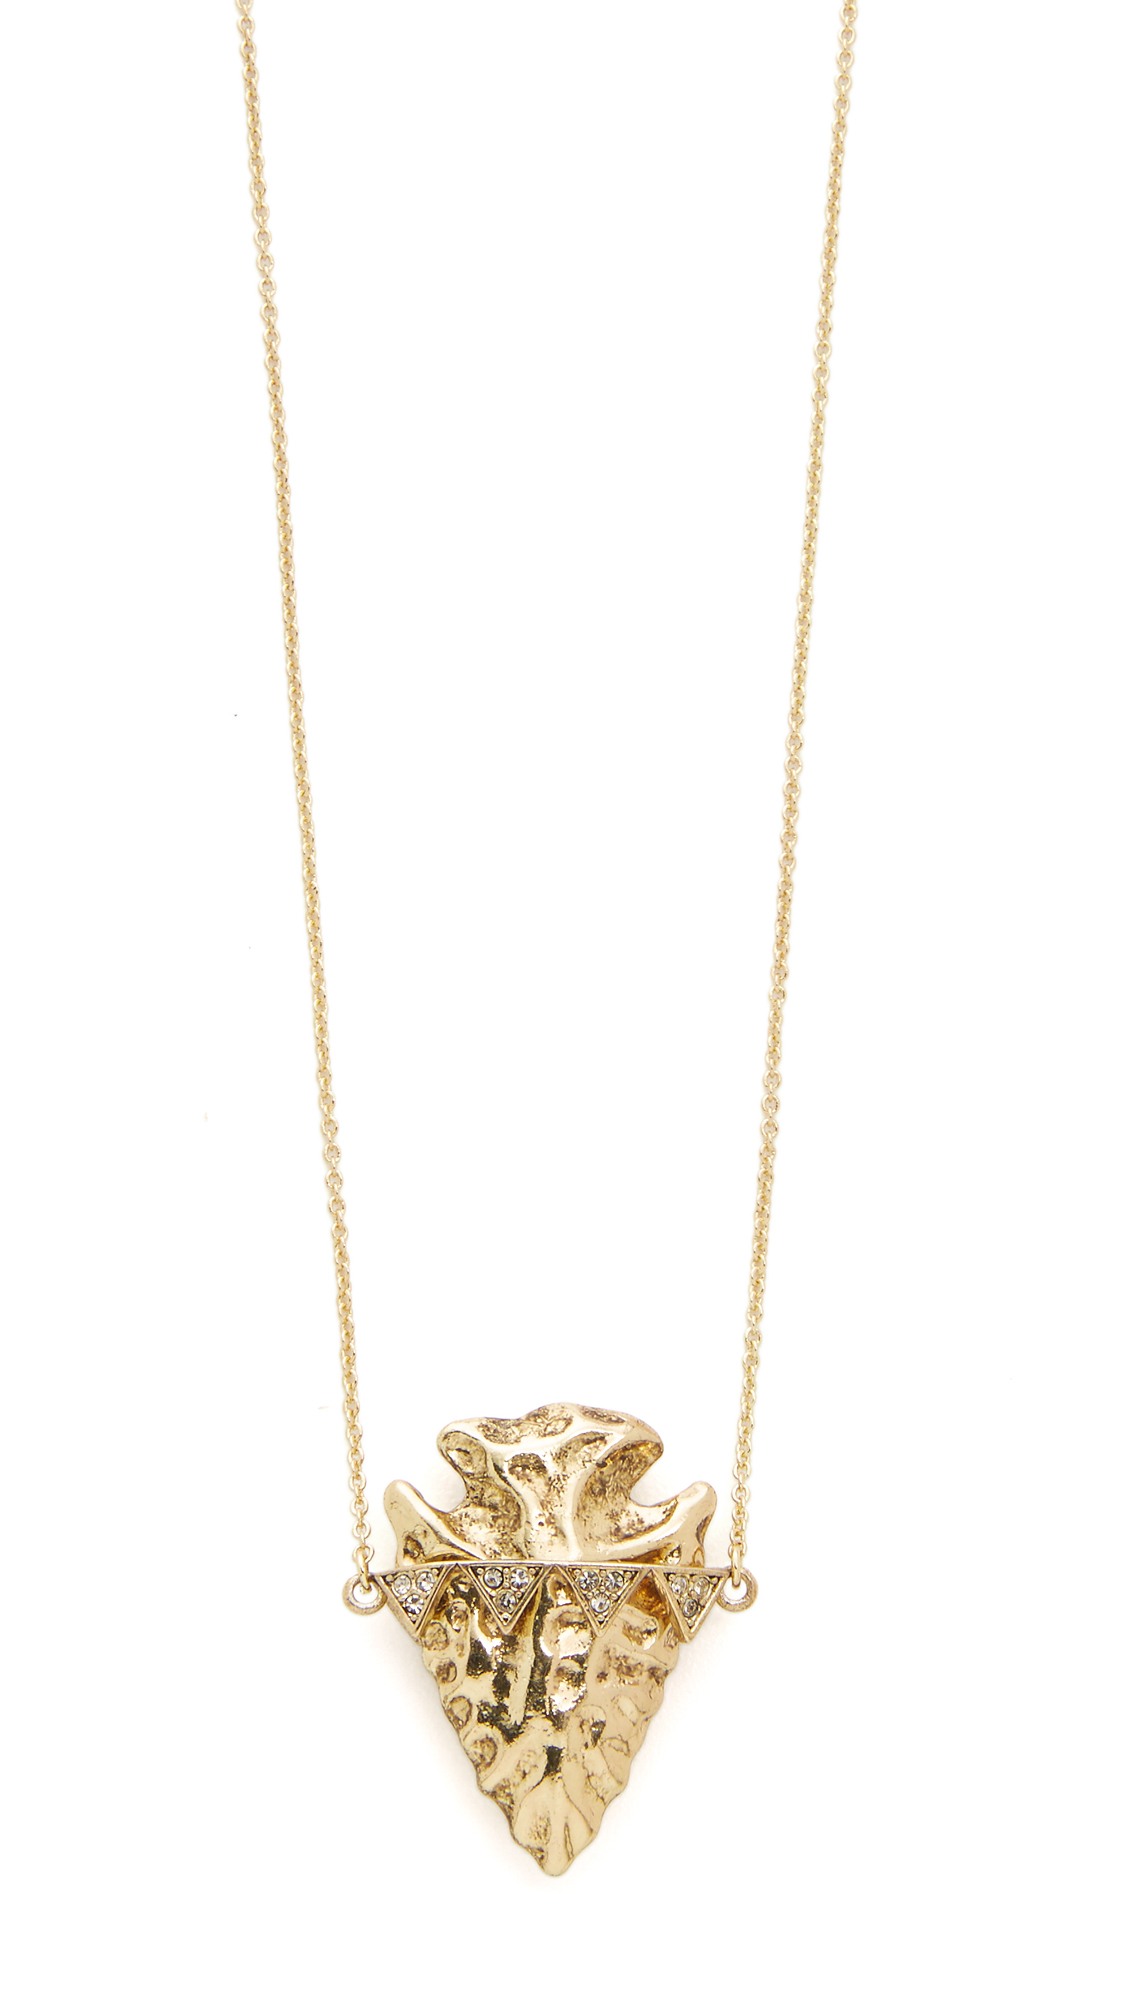 House of harlow 1960 Mojave Pendant Necklace in Metallic ...